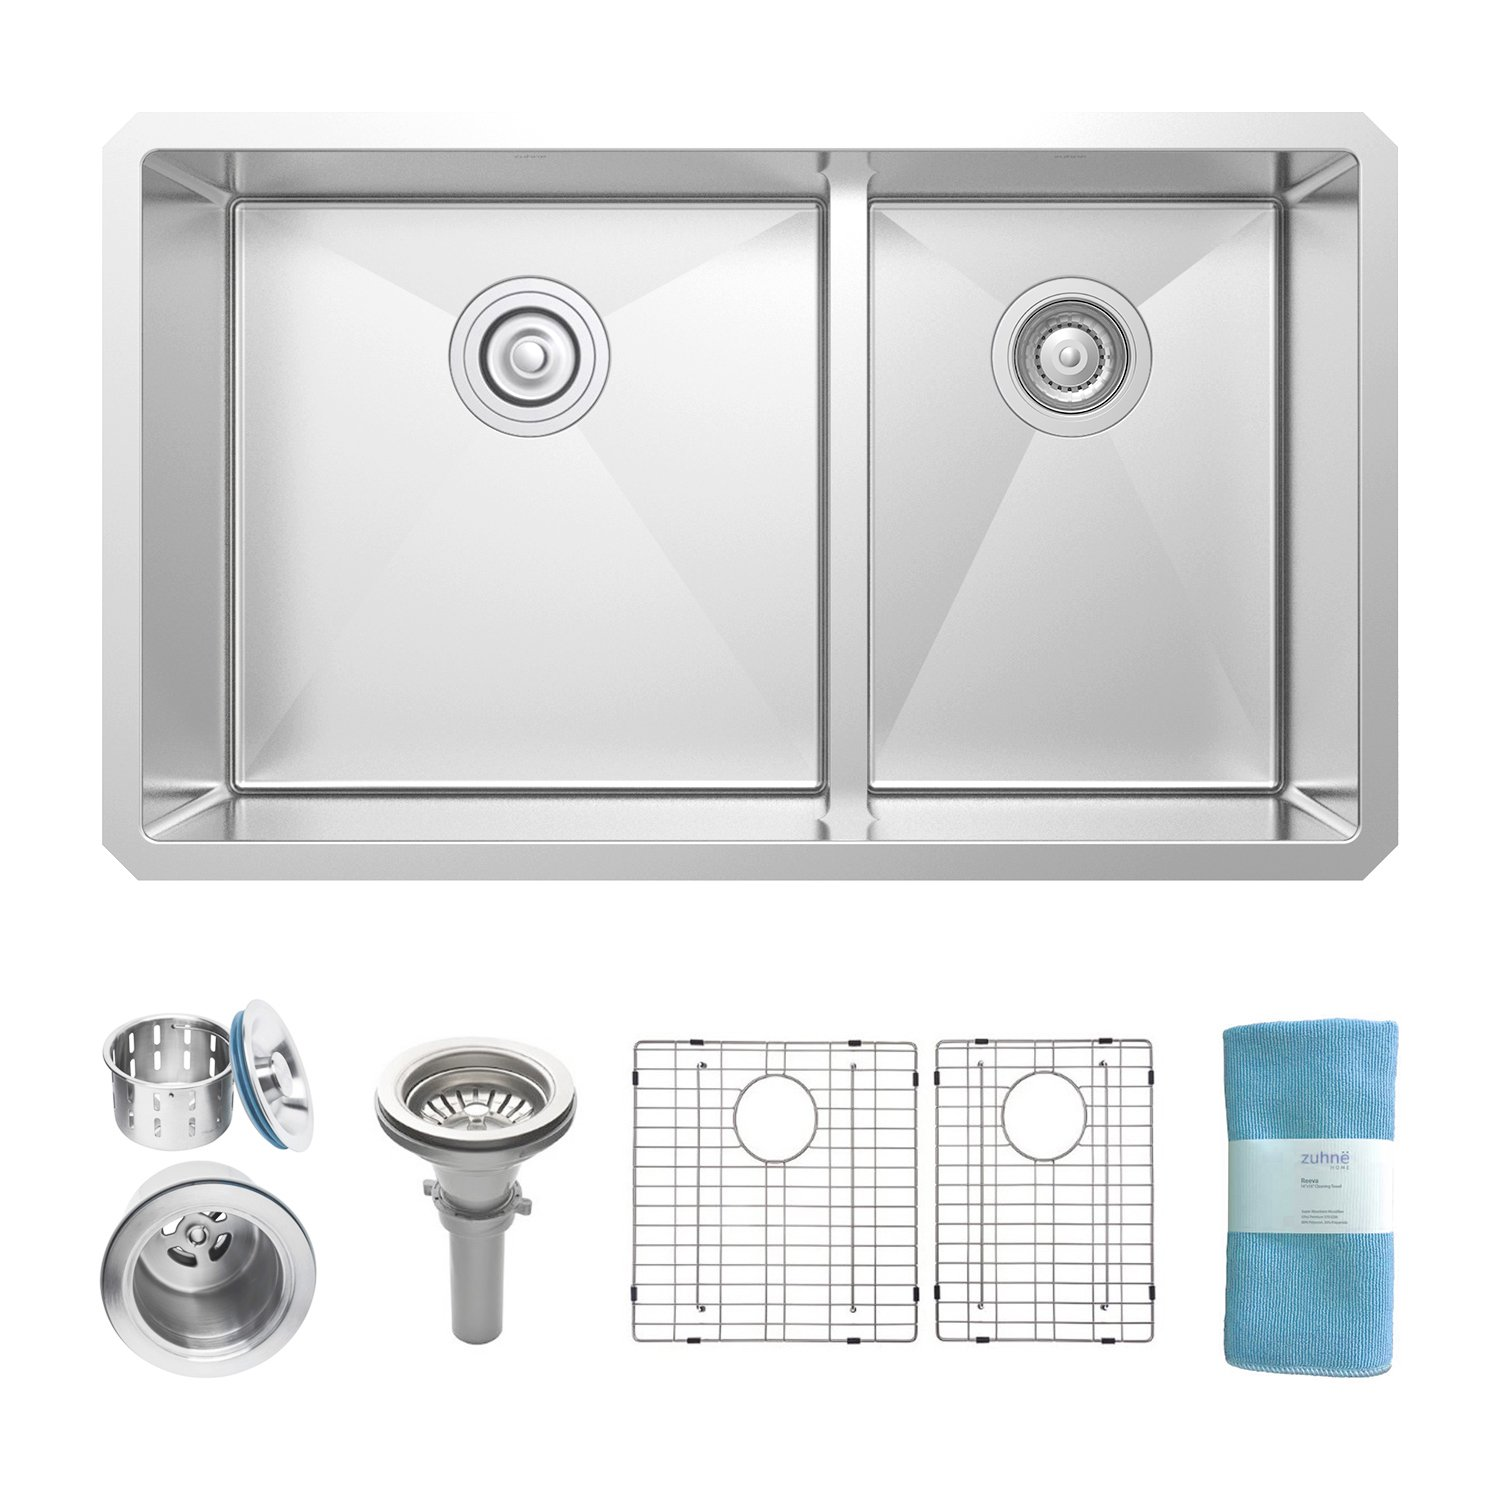 Zuhne Sink Reviews 2020 Uncle Paul S List Of Sinks That